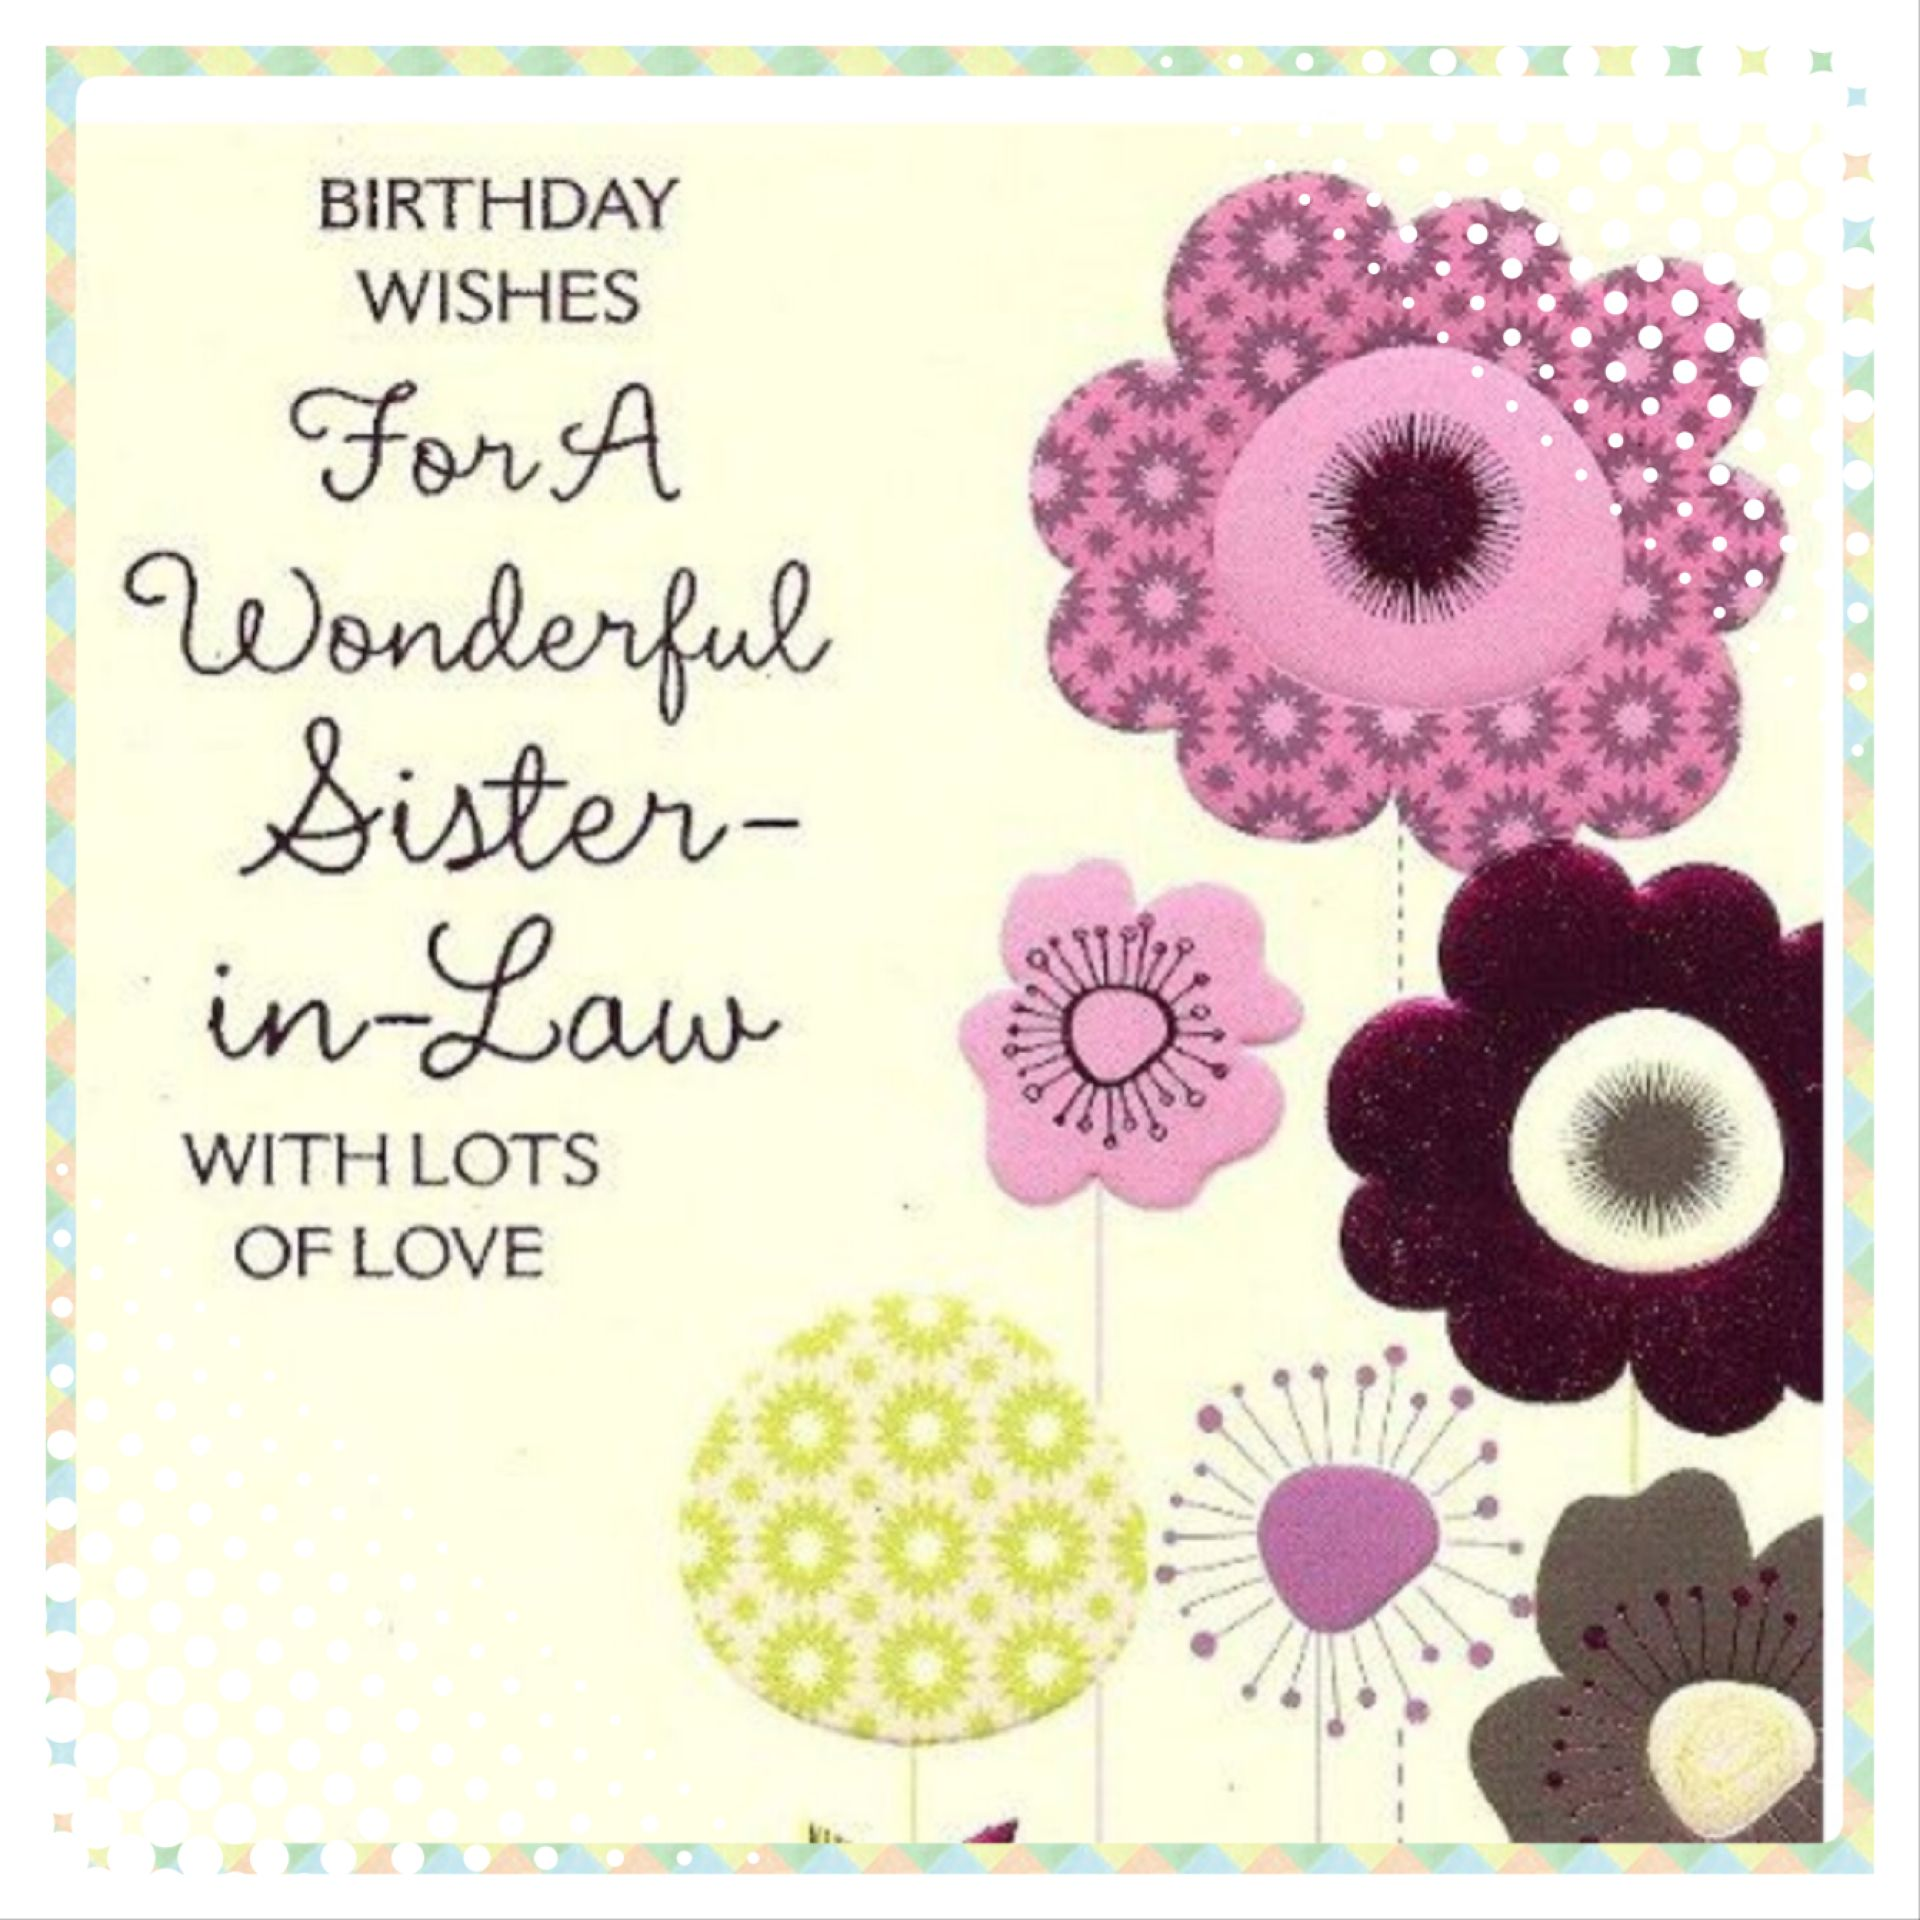 Pin by Grammie Newman on Birthday Free birthday wishes